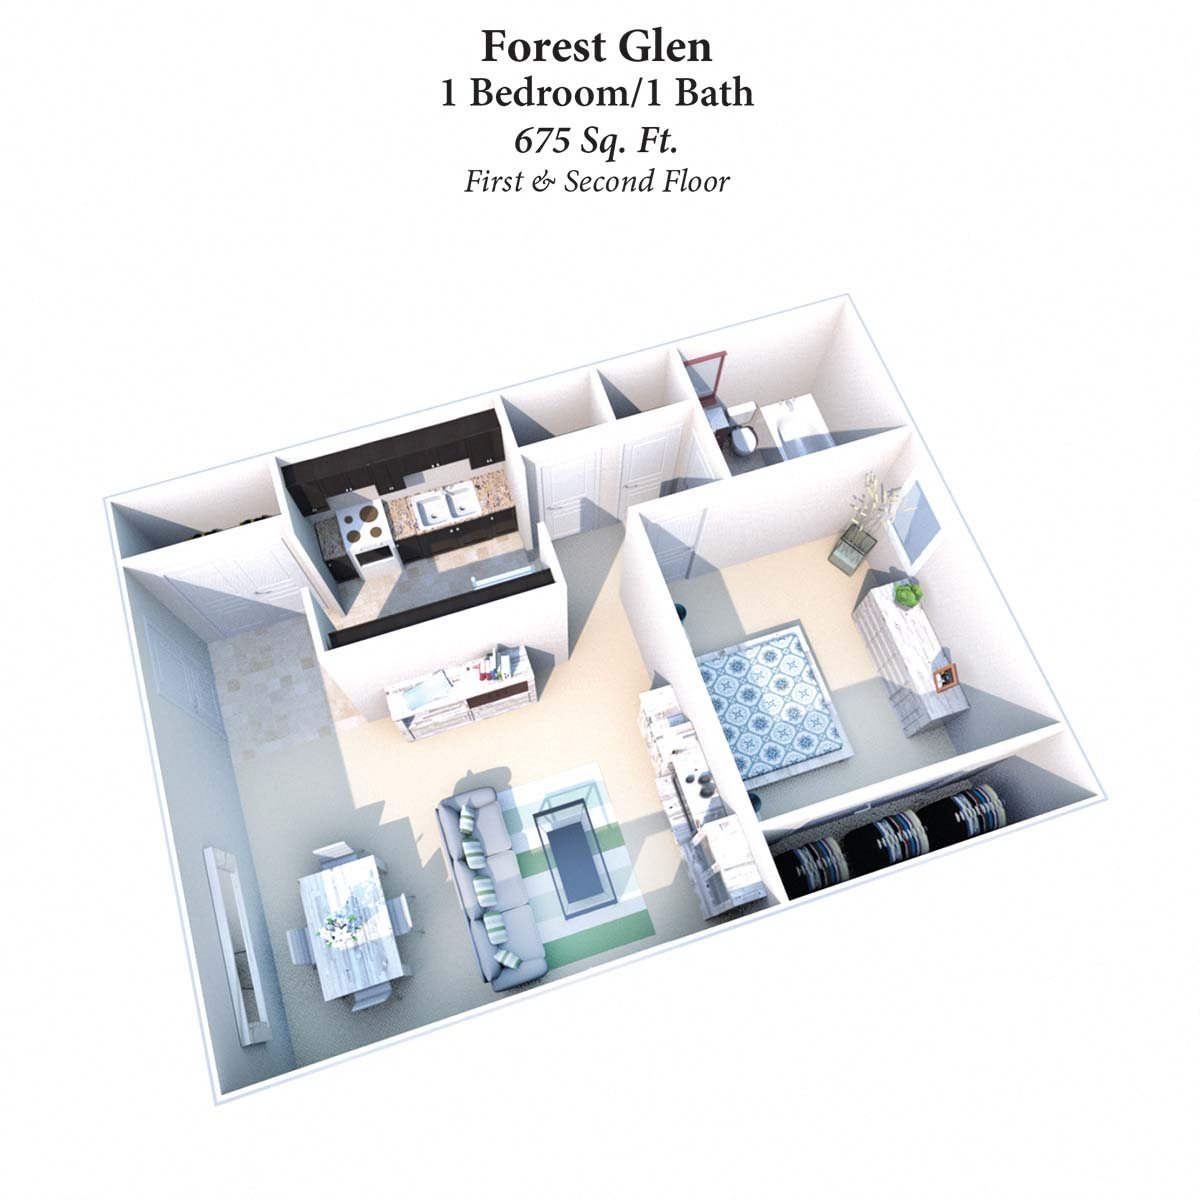 1B/1B Forest Glen 675SqFt Floor Plan 3